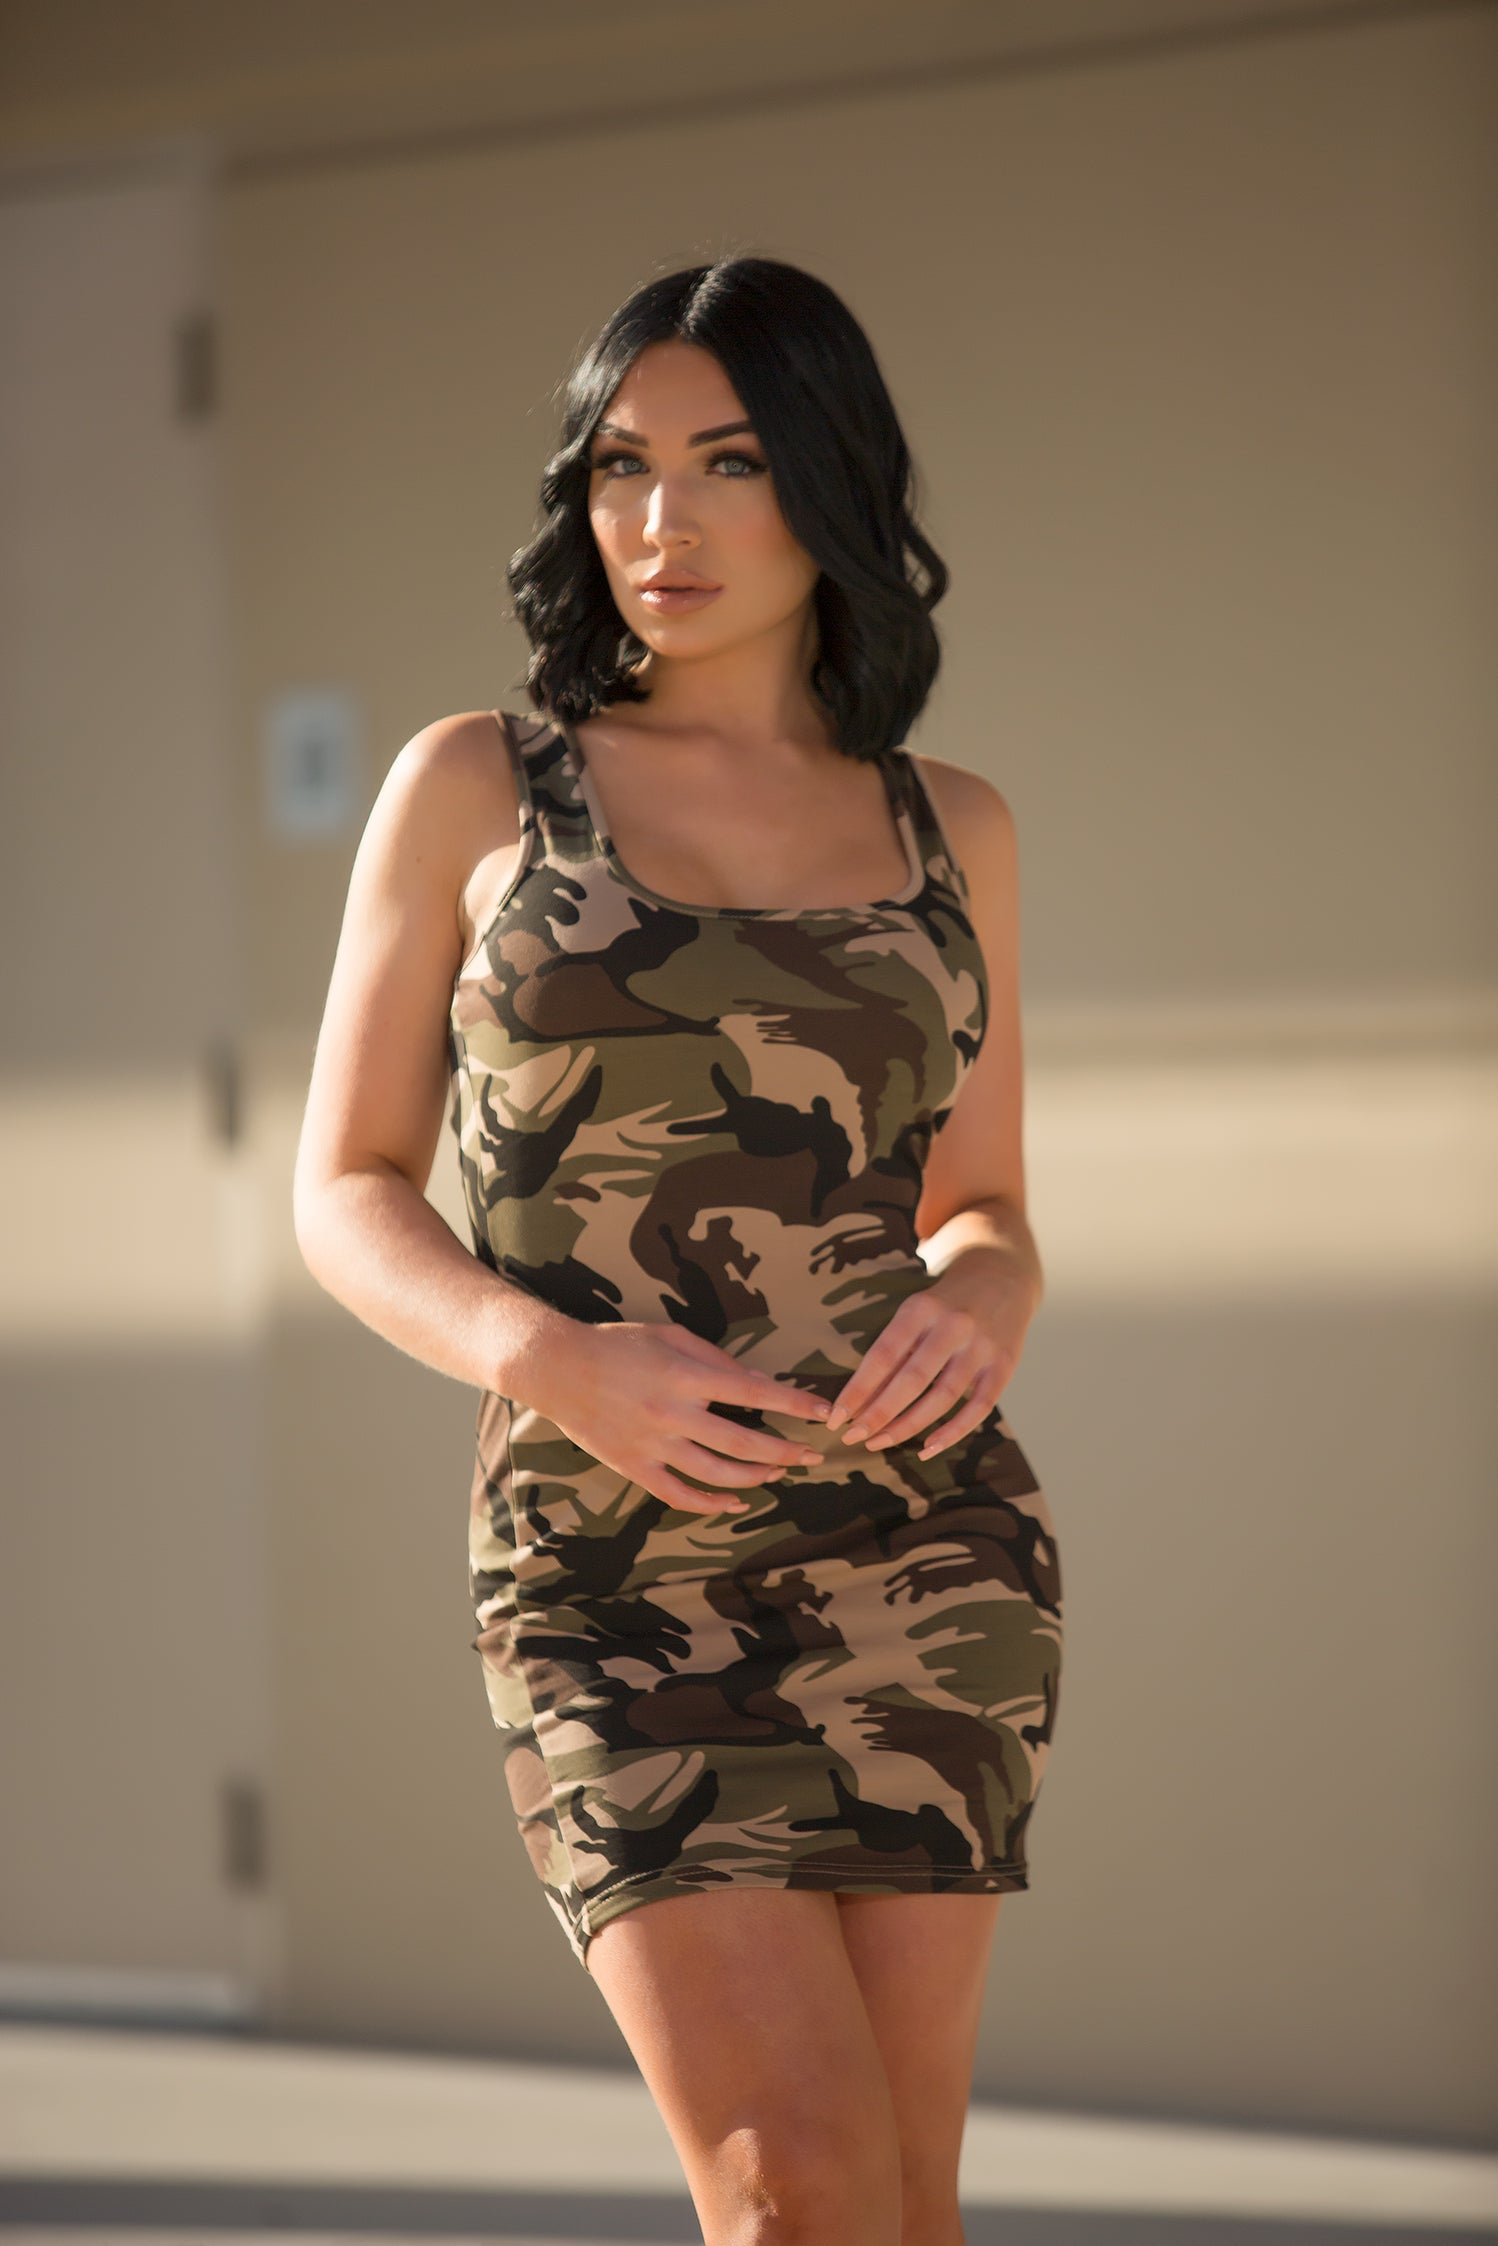 Kristen - Sexy Mini Dress - Camouflage - Semai House Of fashion